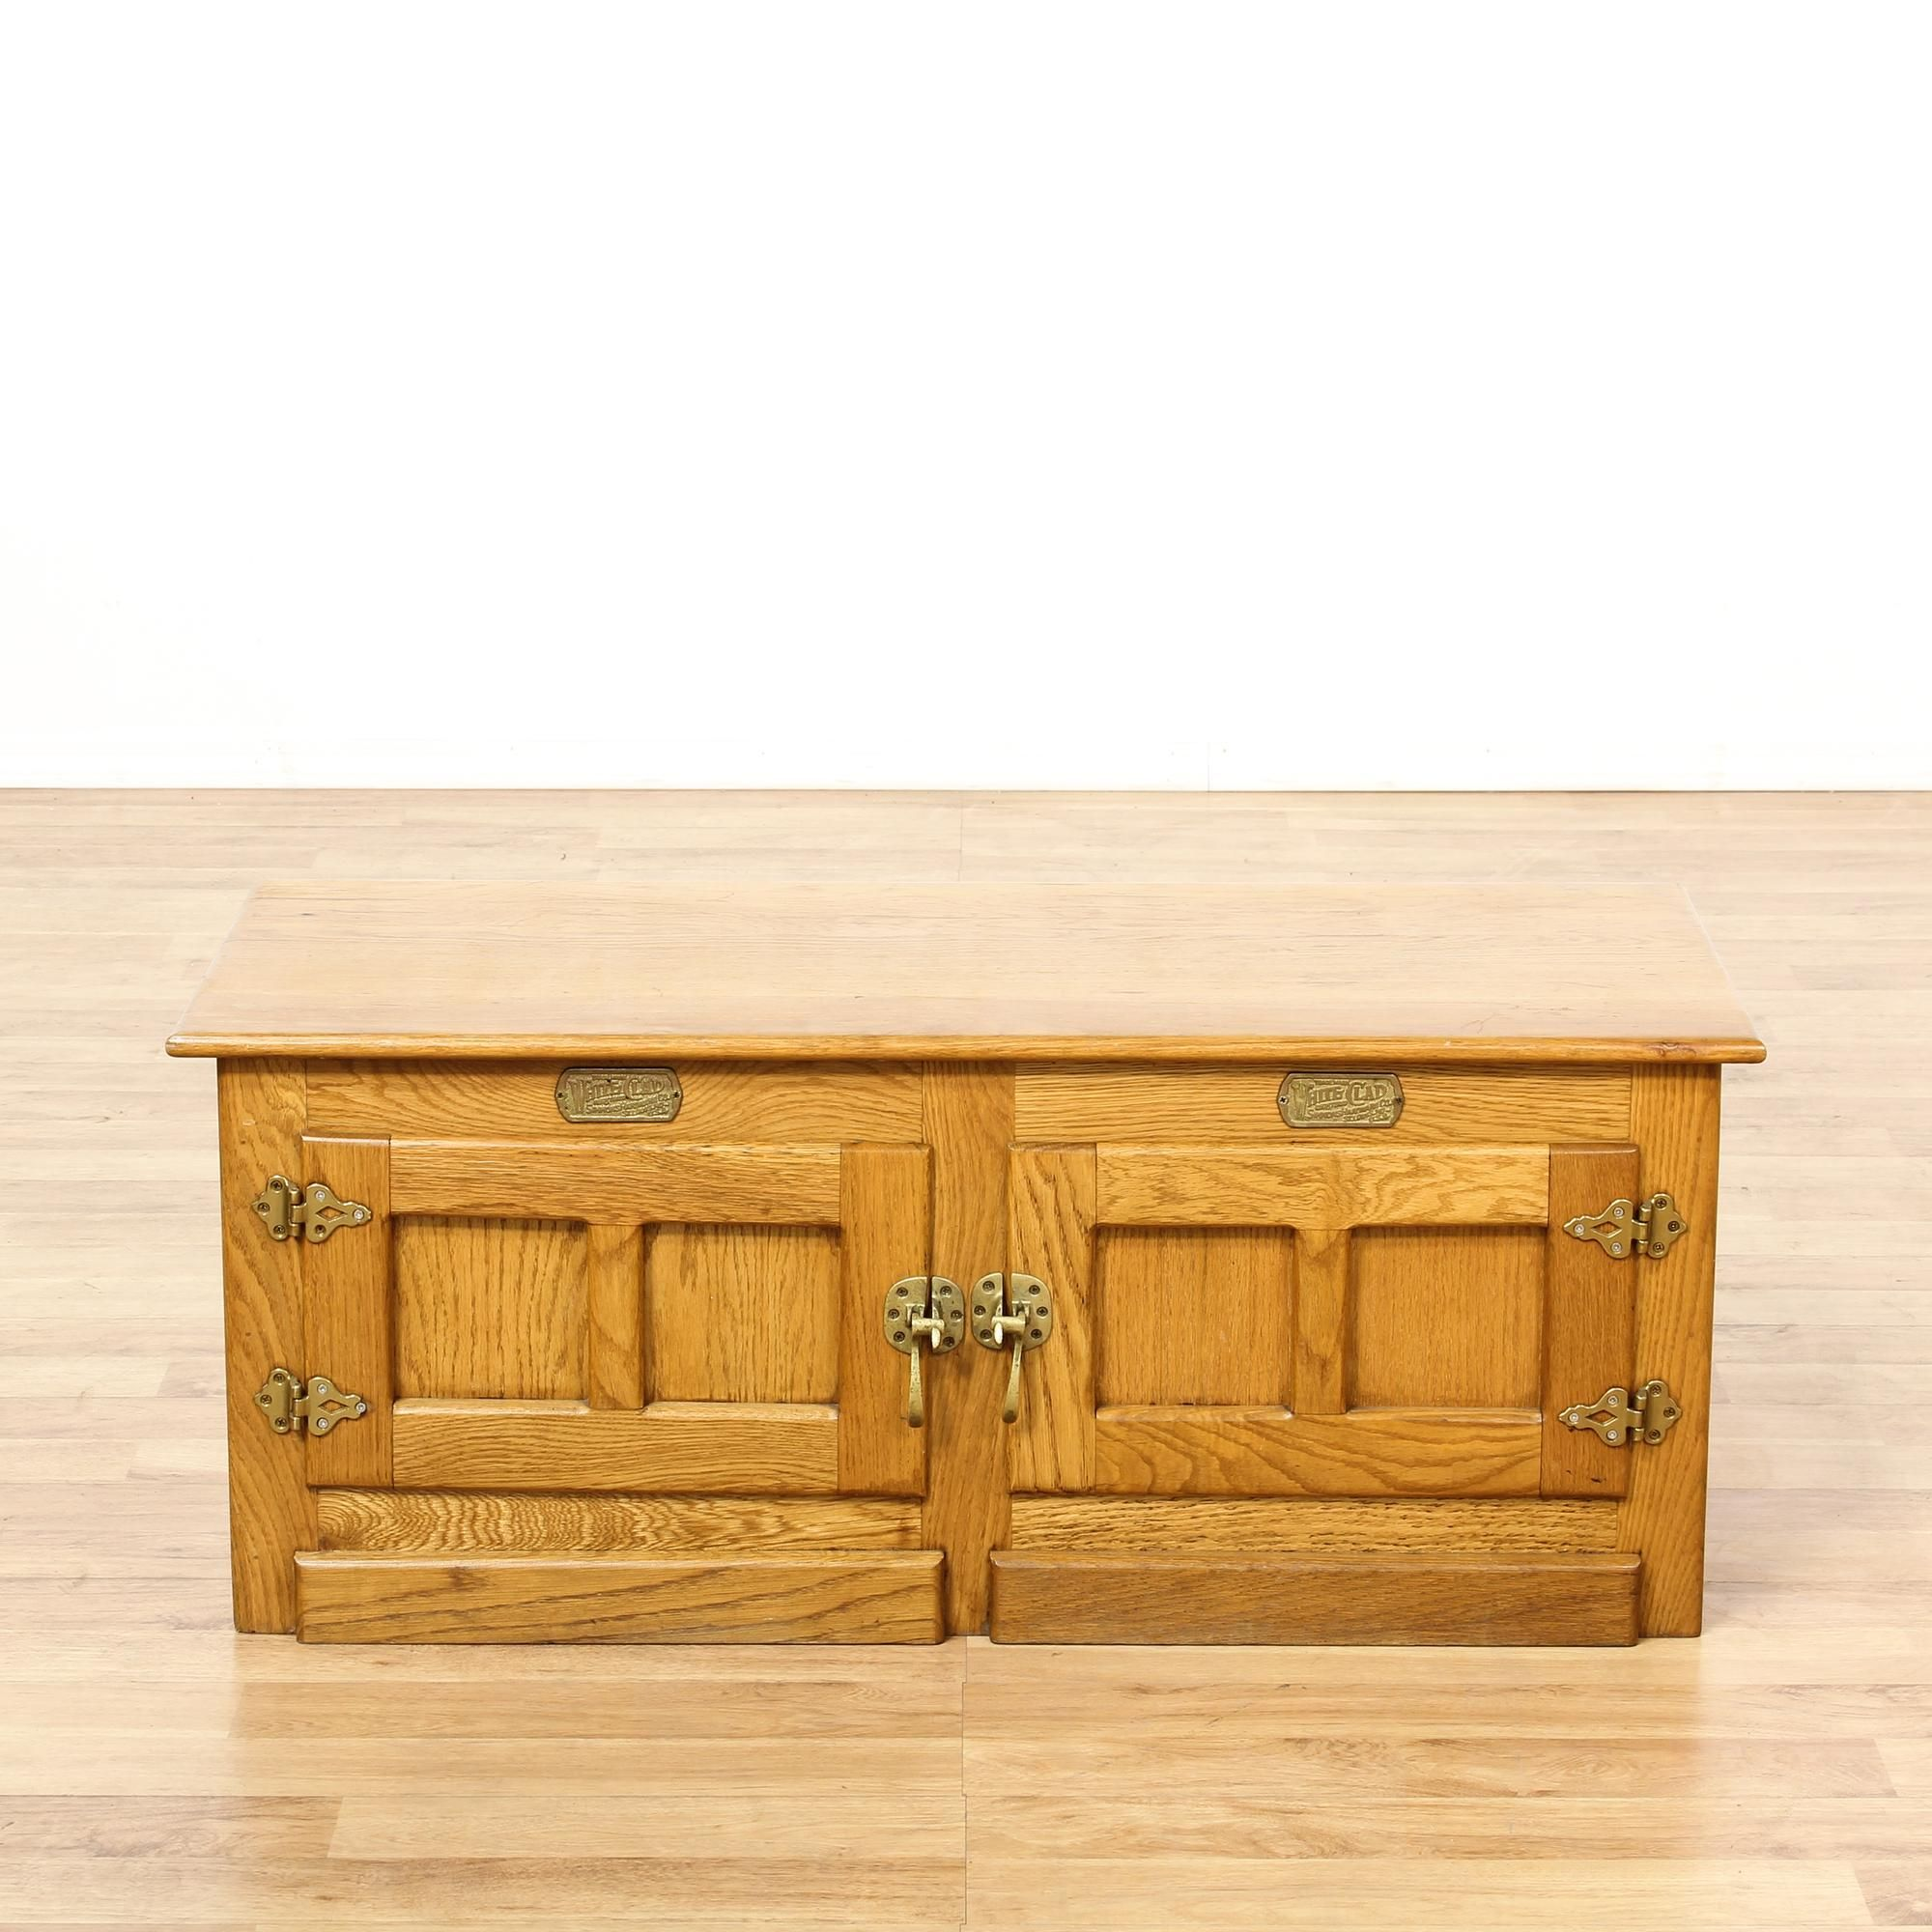 This White Clad Ice Box Cabinet Is Featured In A Solid Wood With